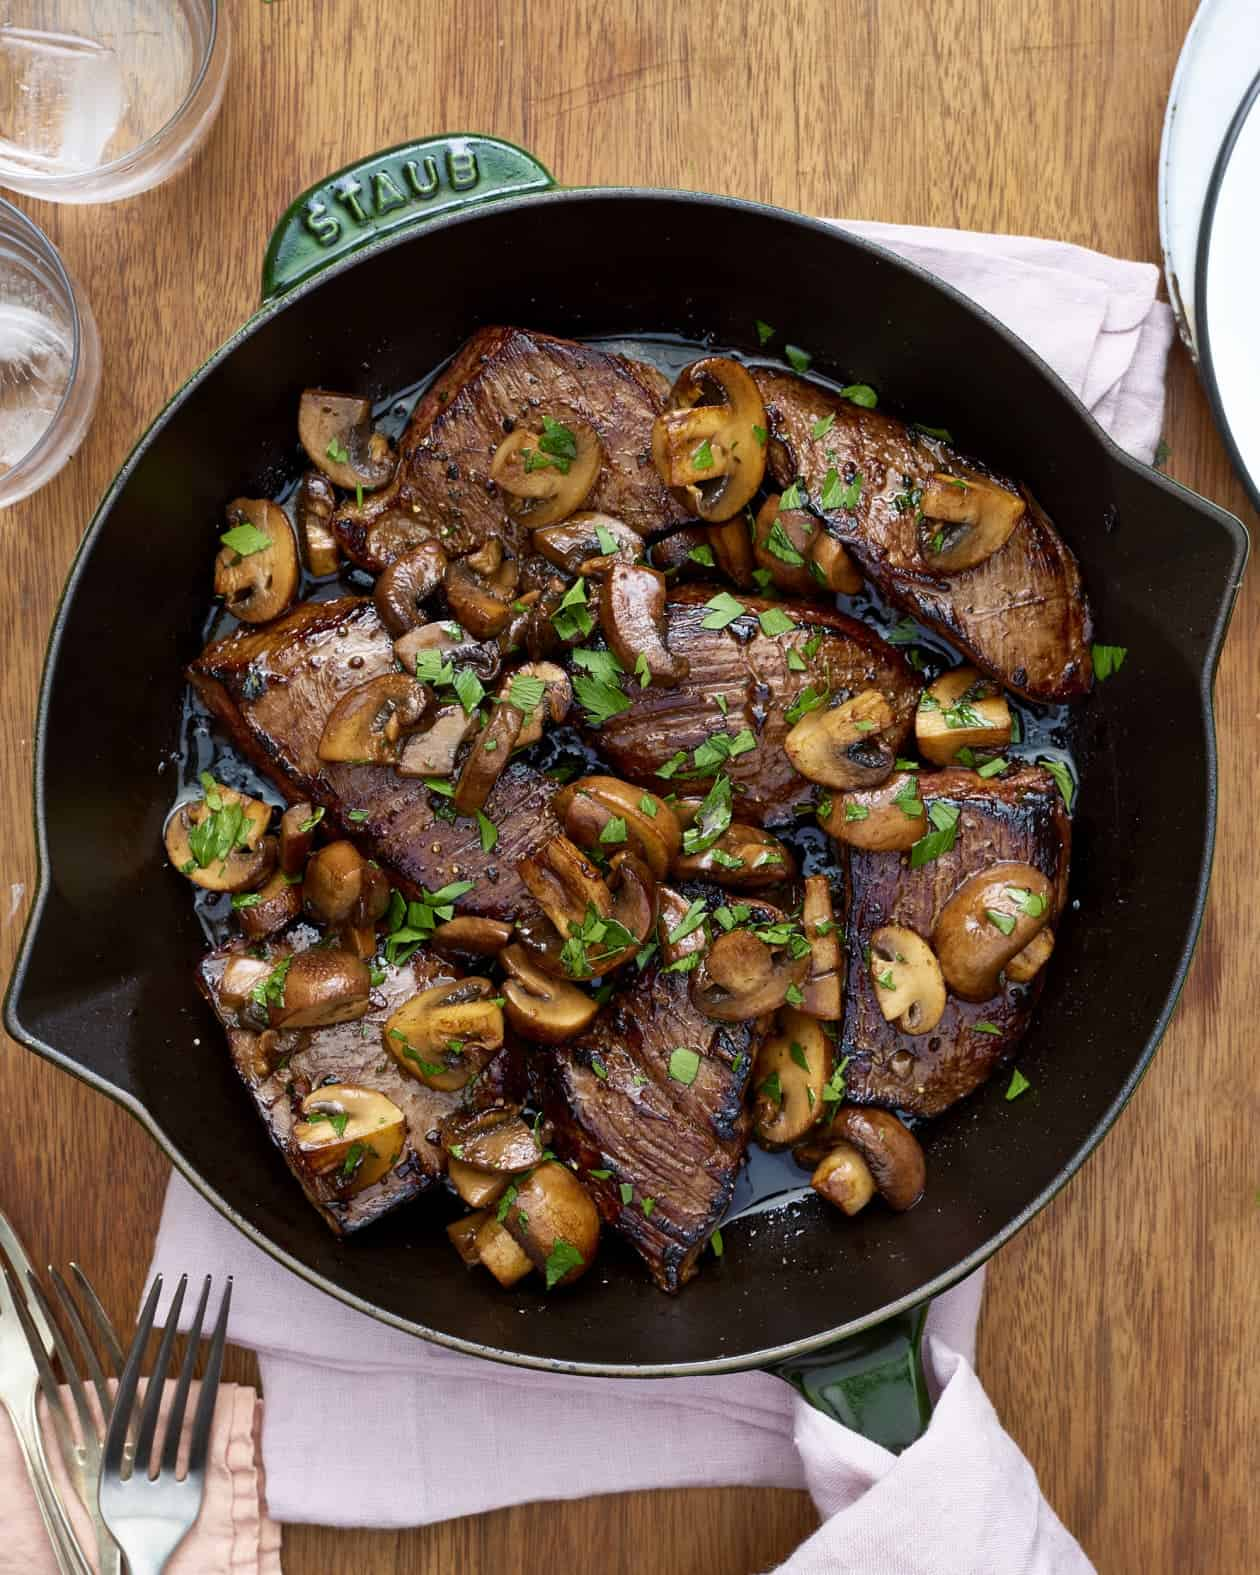 Balsamic glazed steak tips and mushrooms